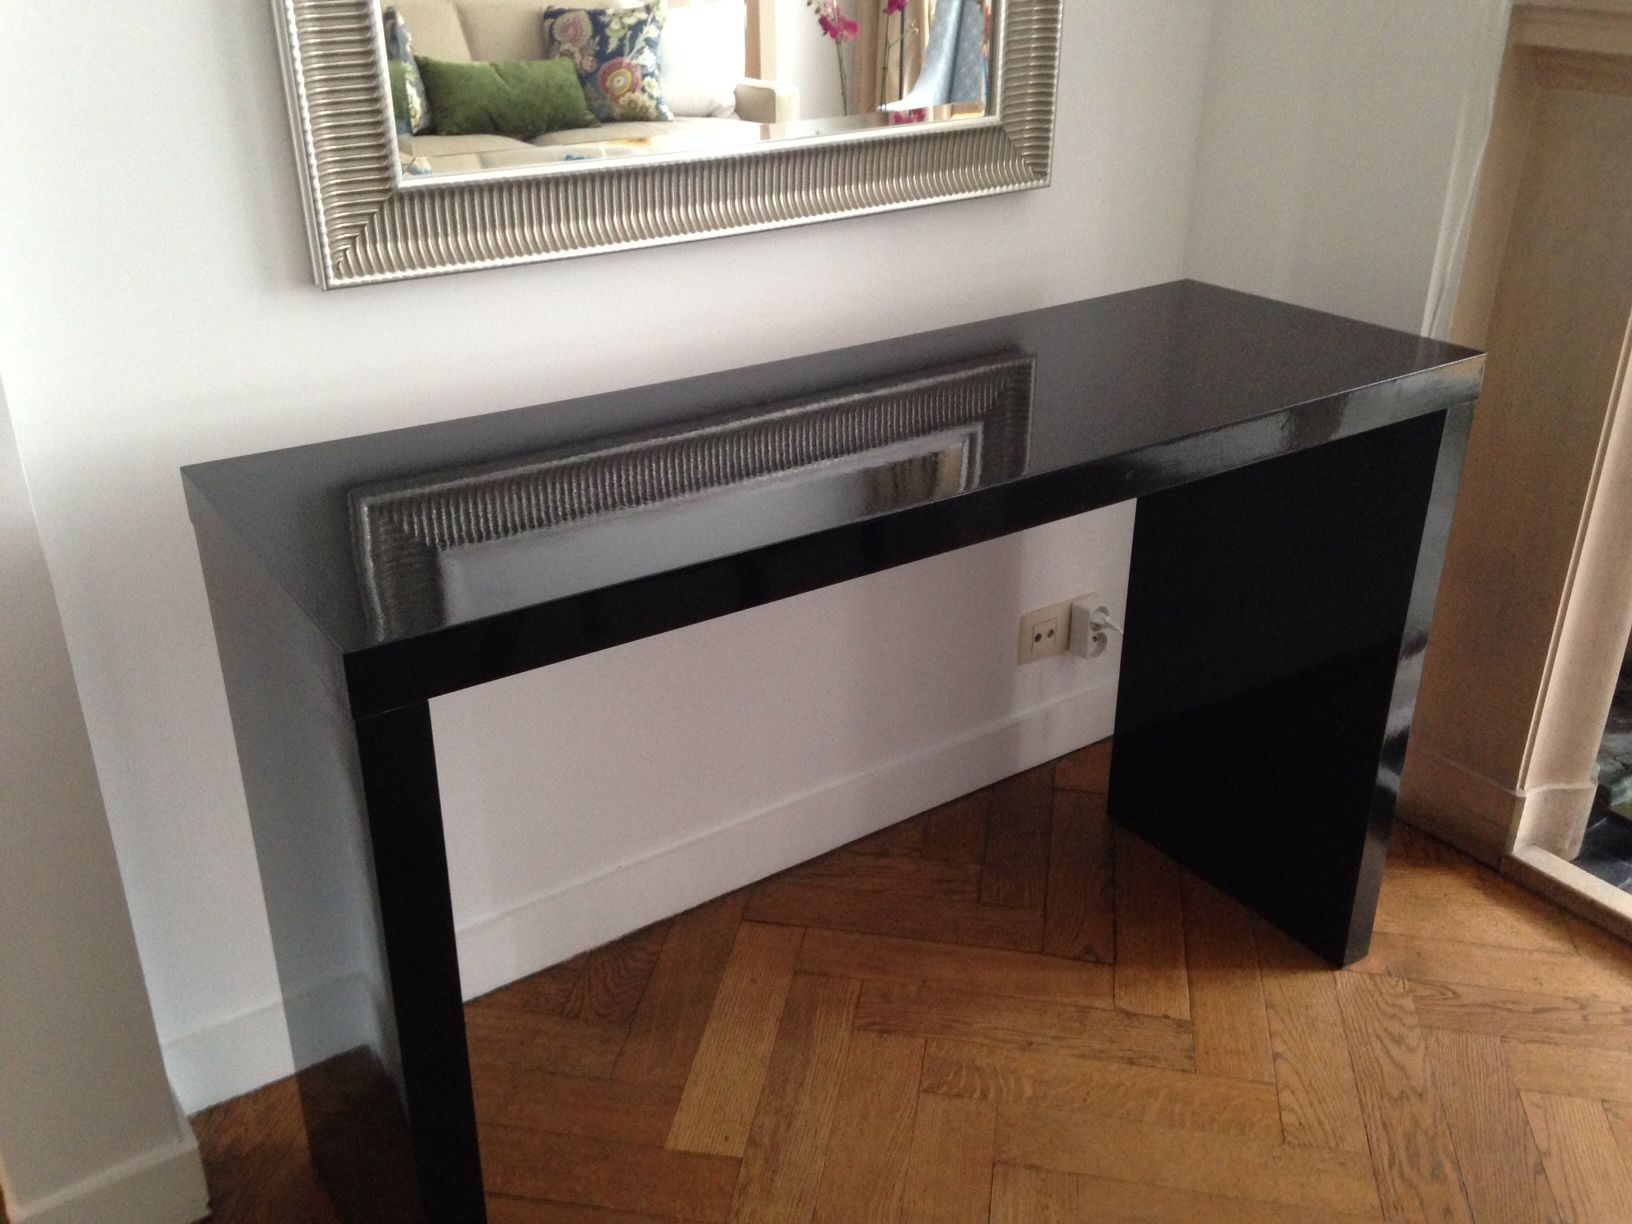 How to make a sofa table out of floor boards - Ikea Furniture F Composite Board Laminate Finish Sand Assembling Sand Bumps Dust Off